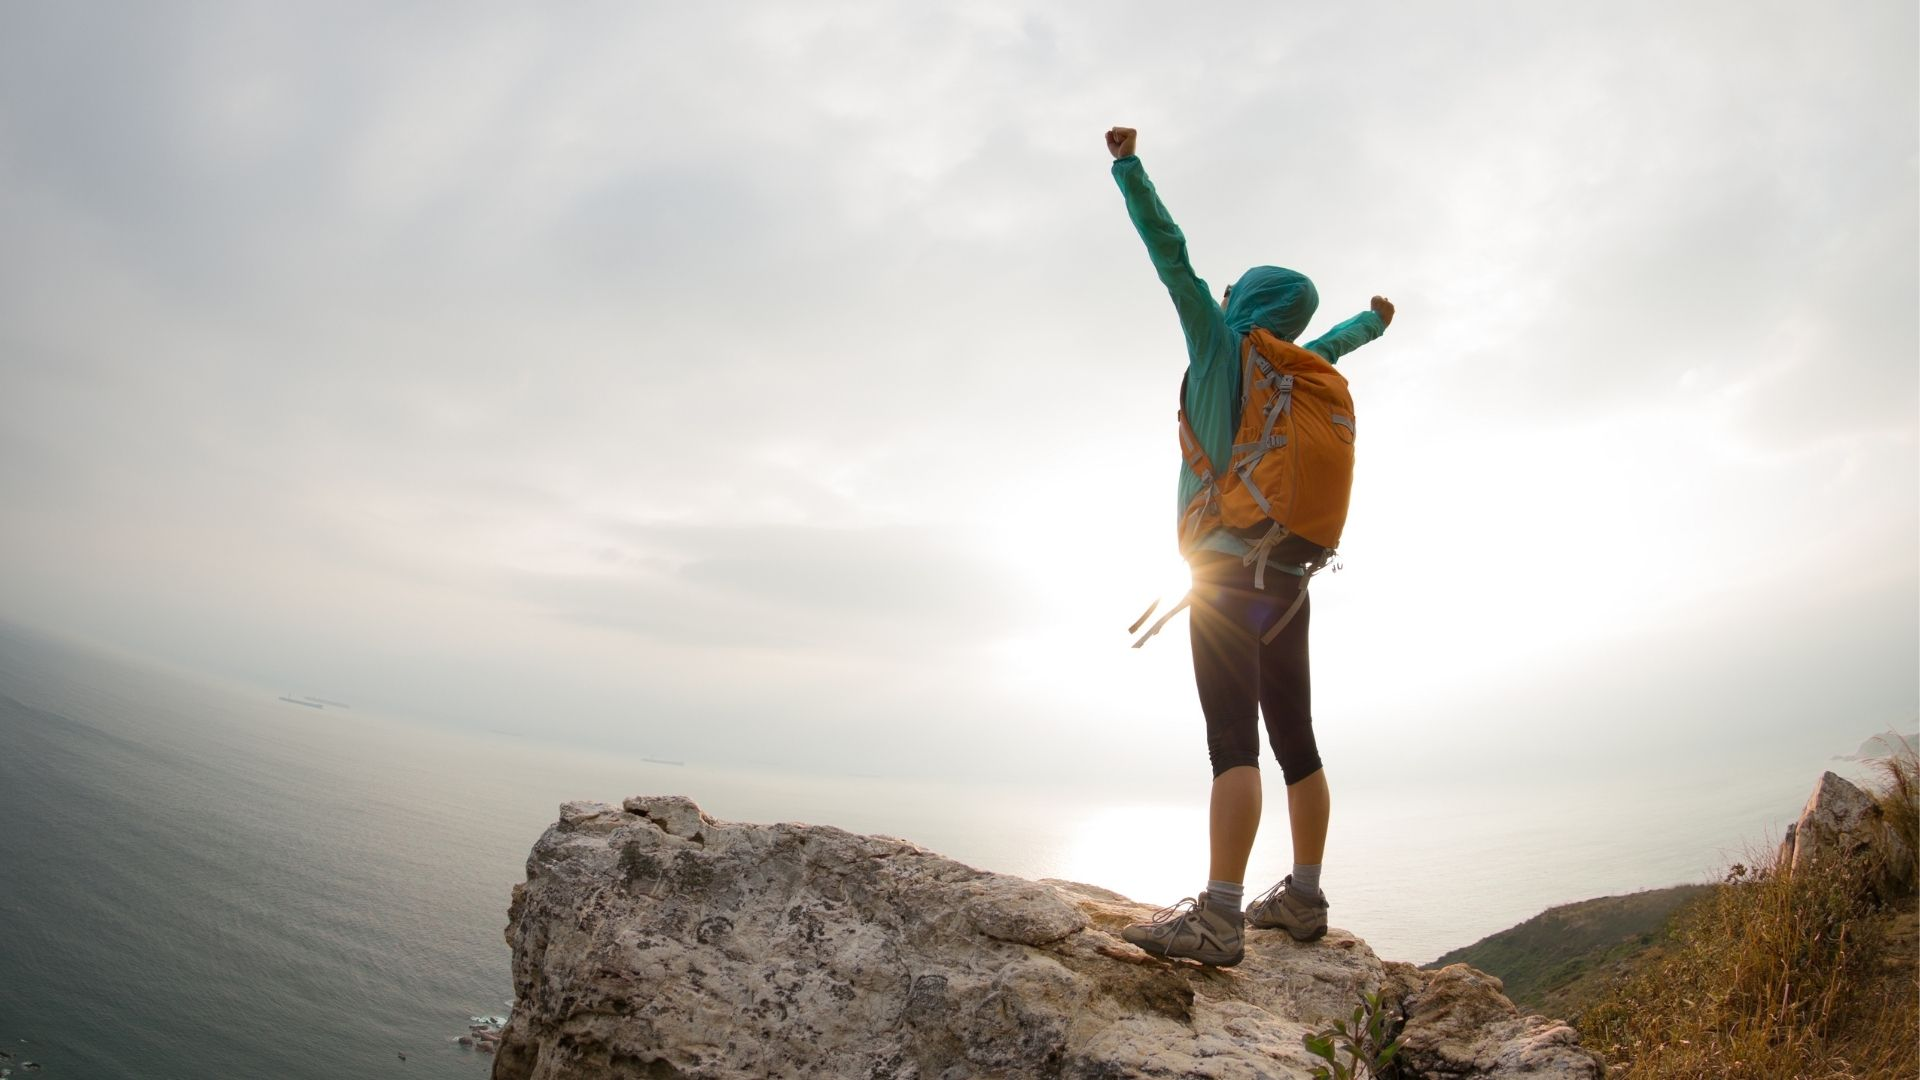 Joy of reaching the summit of a mountain after a hike